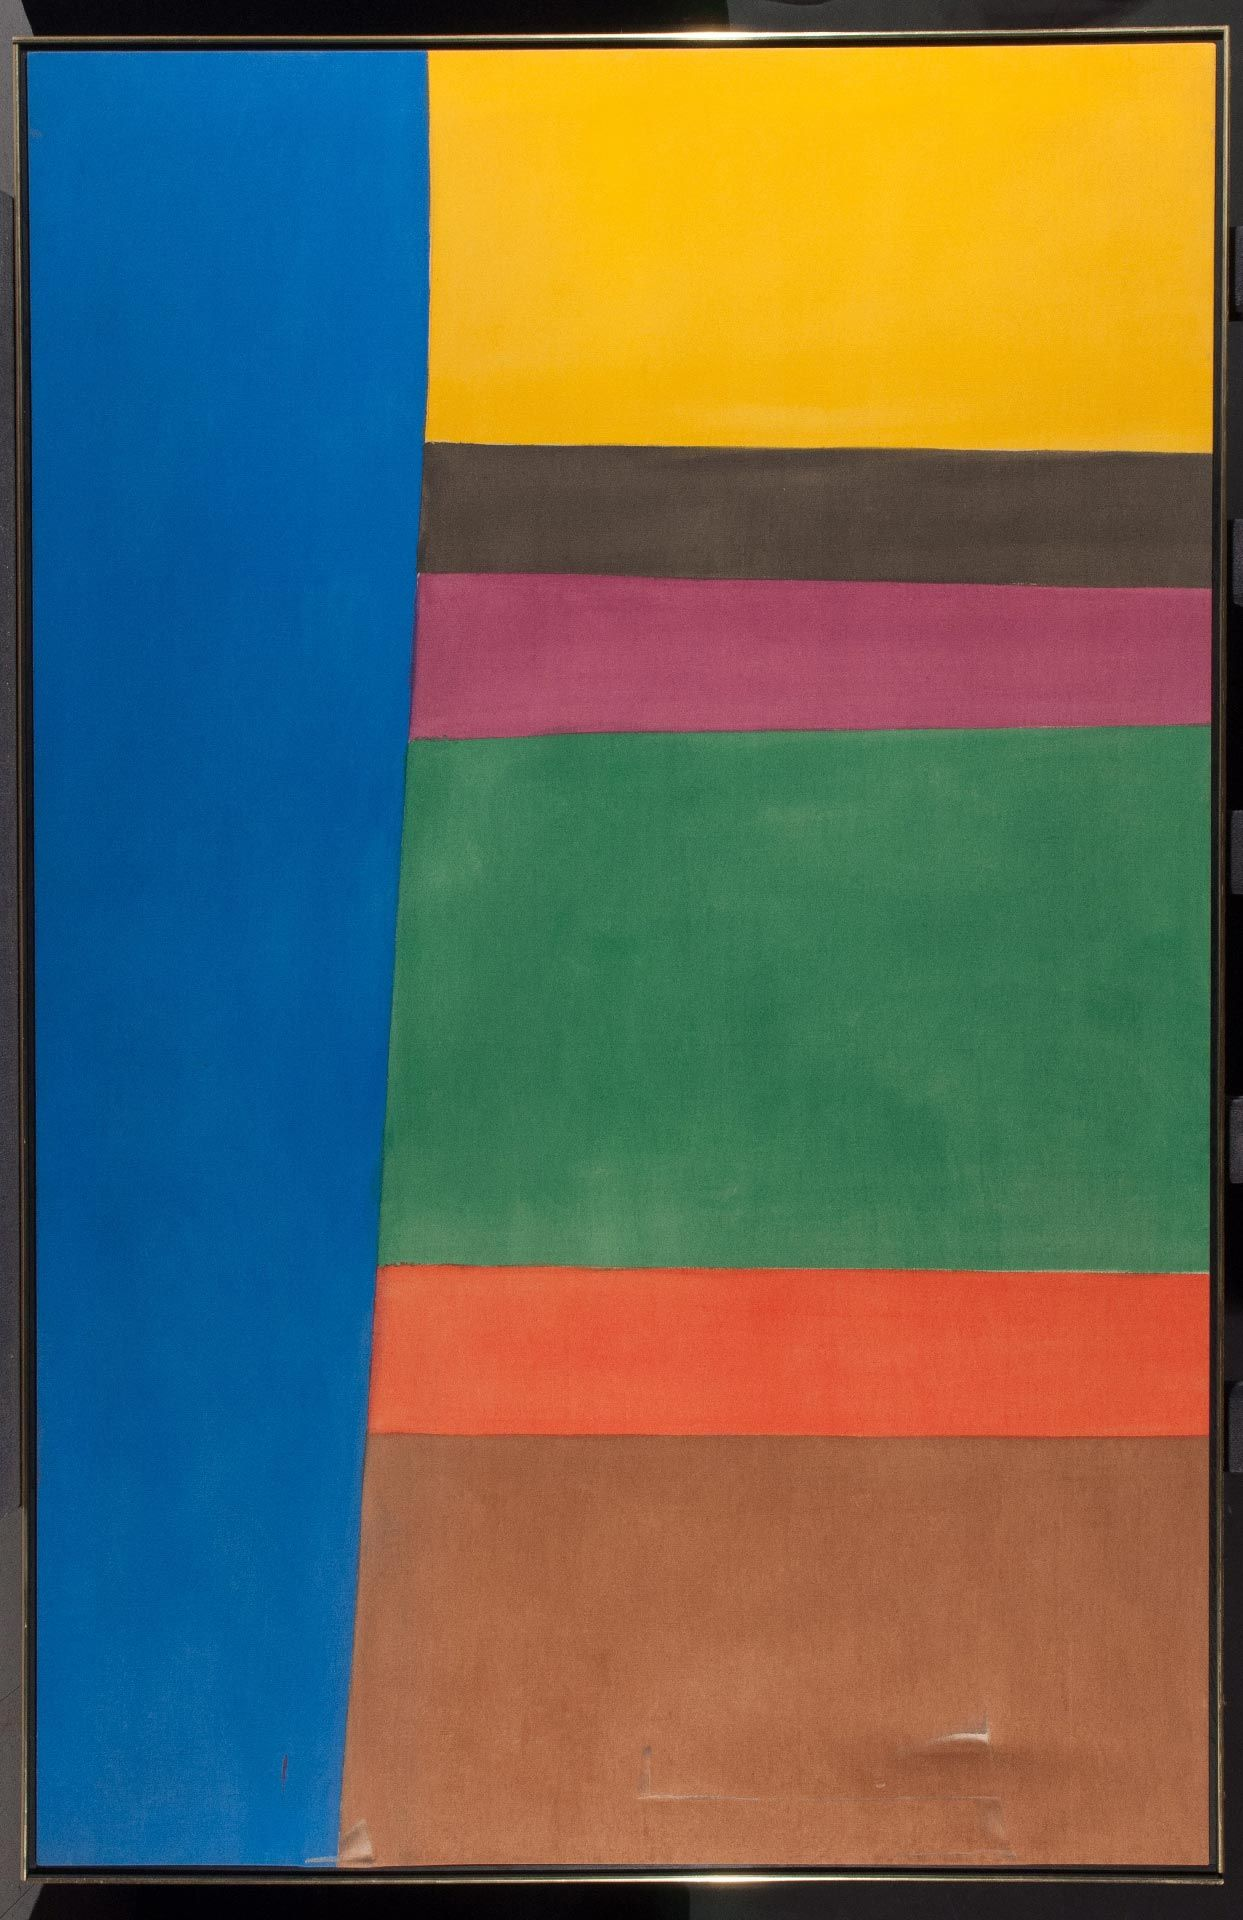 Sea Deep, 1965, oil on canvas, 223.4 x 145 cm. MMFA, purchase, grant from the Government of Canada under the terms of the Cultural Property Export and Import Act, and gift of Elca, Jonas and Mark London. Before treatment